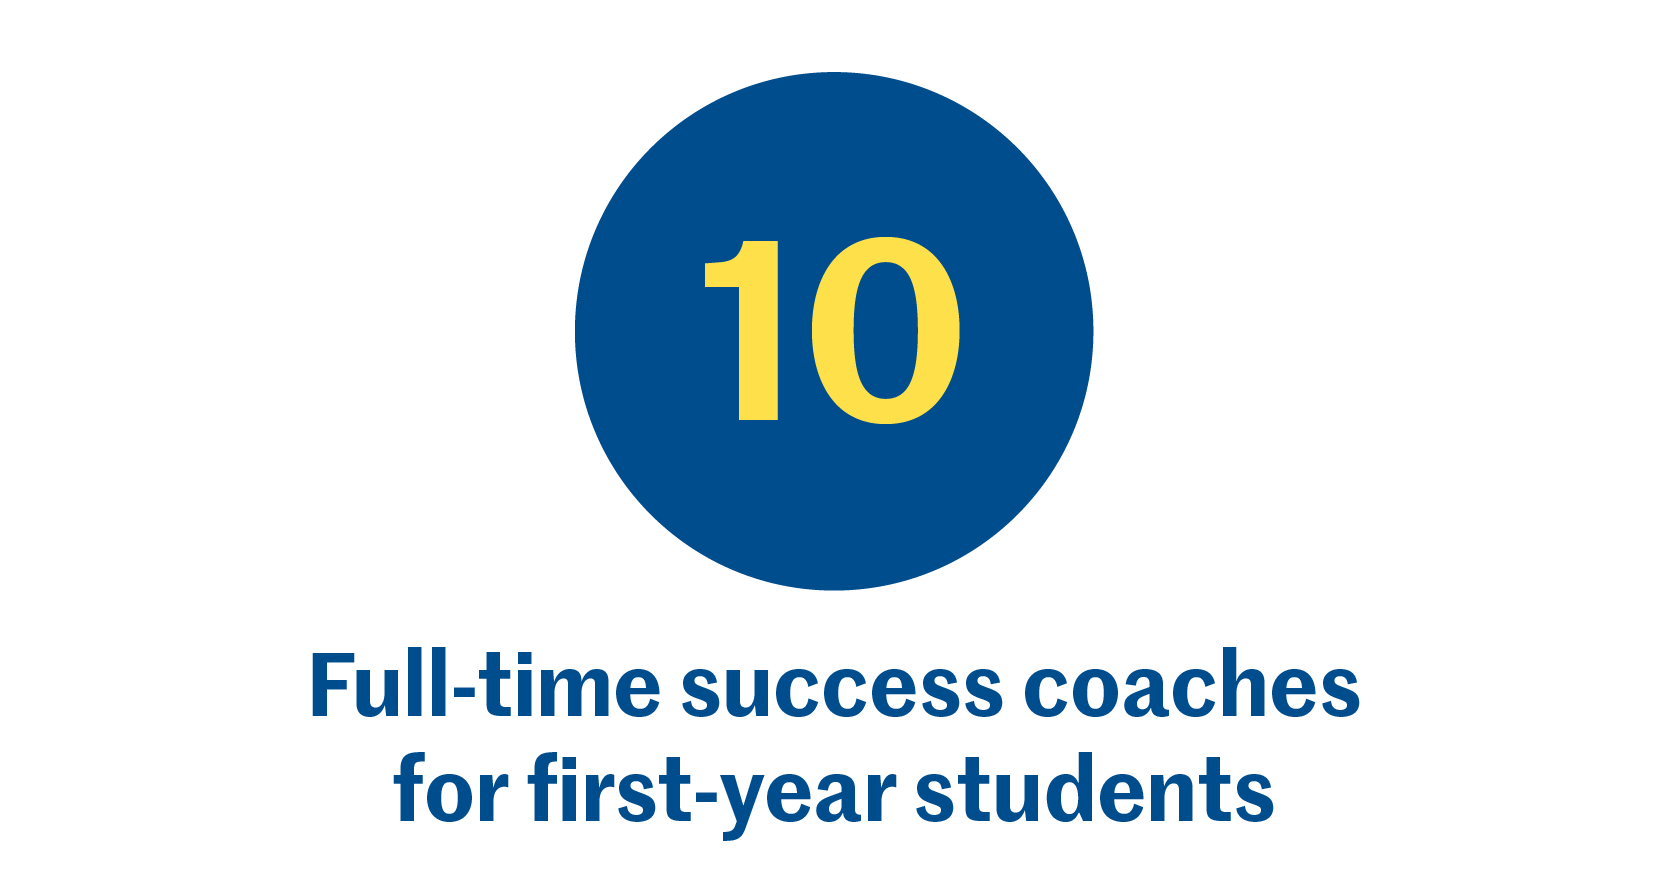 10 full-time success coaches for first-year students